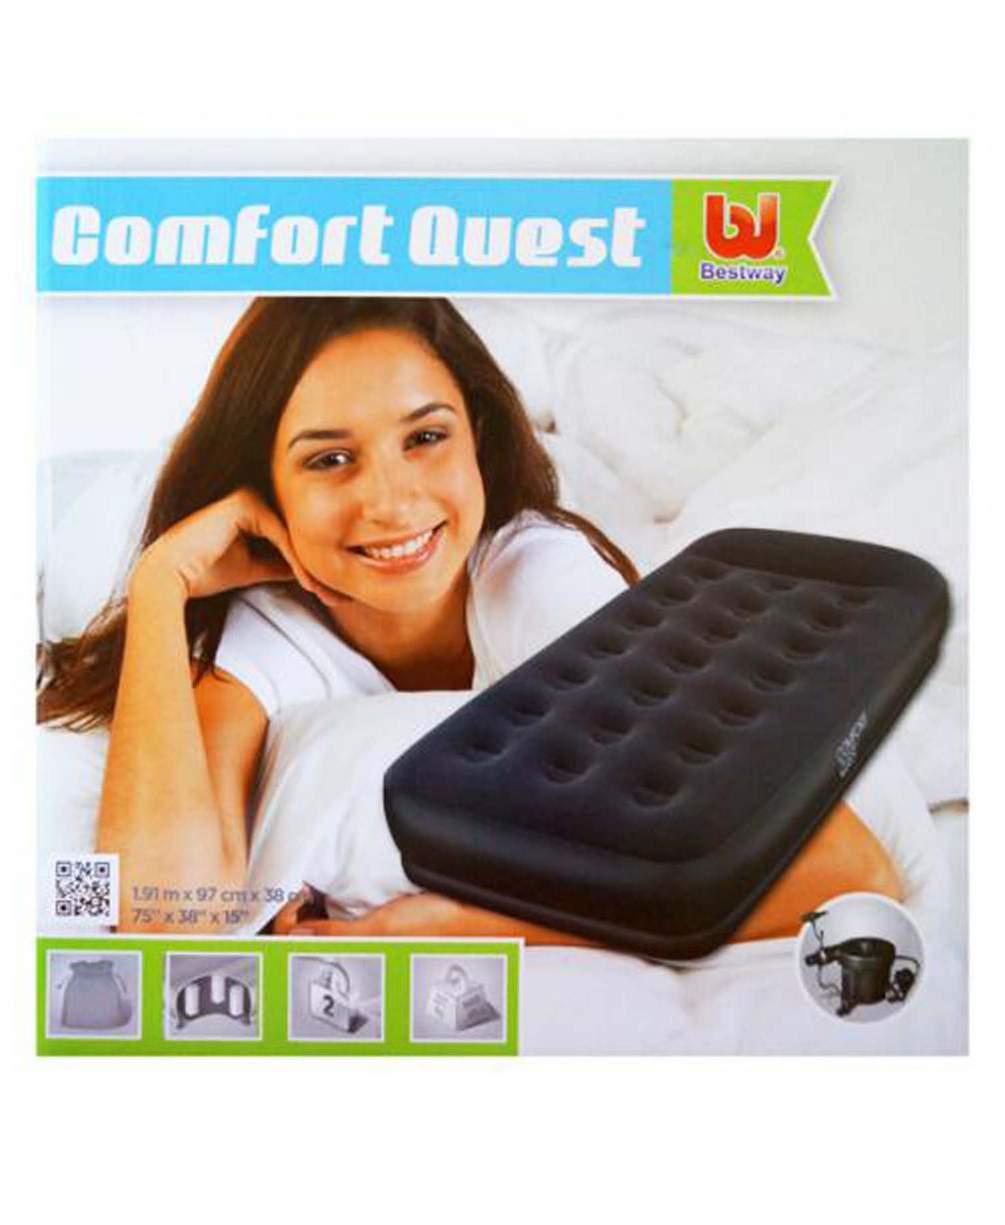 Надувная кровать Restaira Air Bed with Ac Air Pump(Single) 191х97х38 см, электронасос в комплекте, Bestway 67453 BW